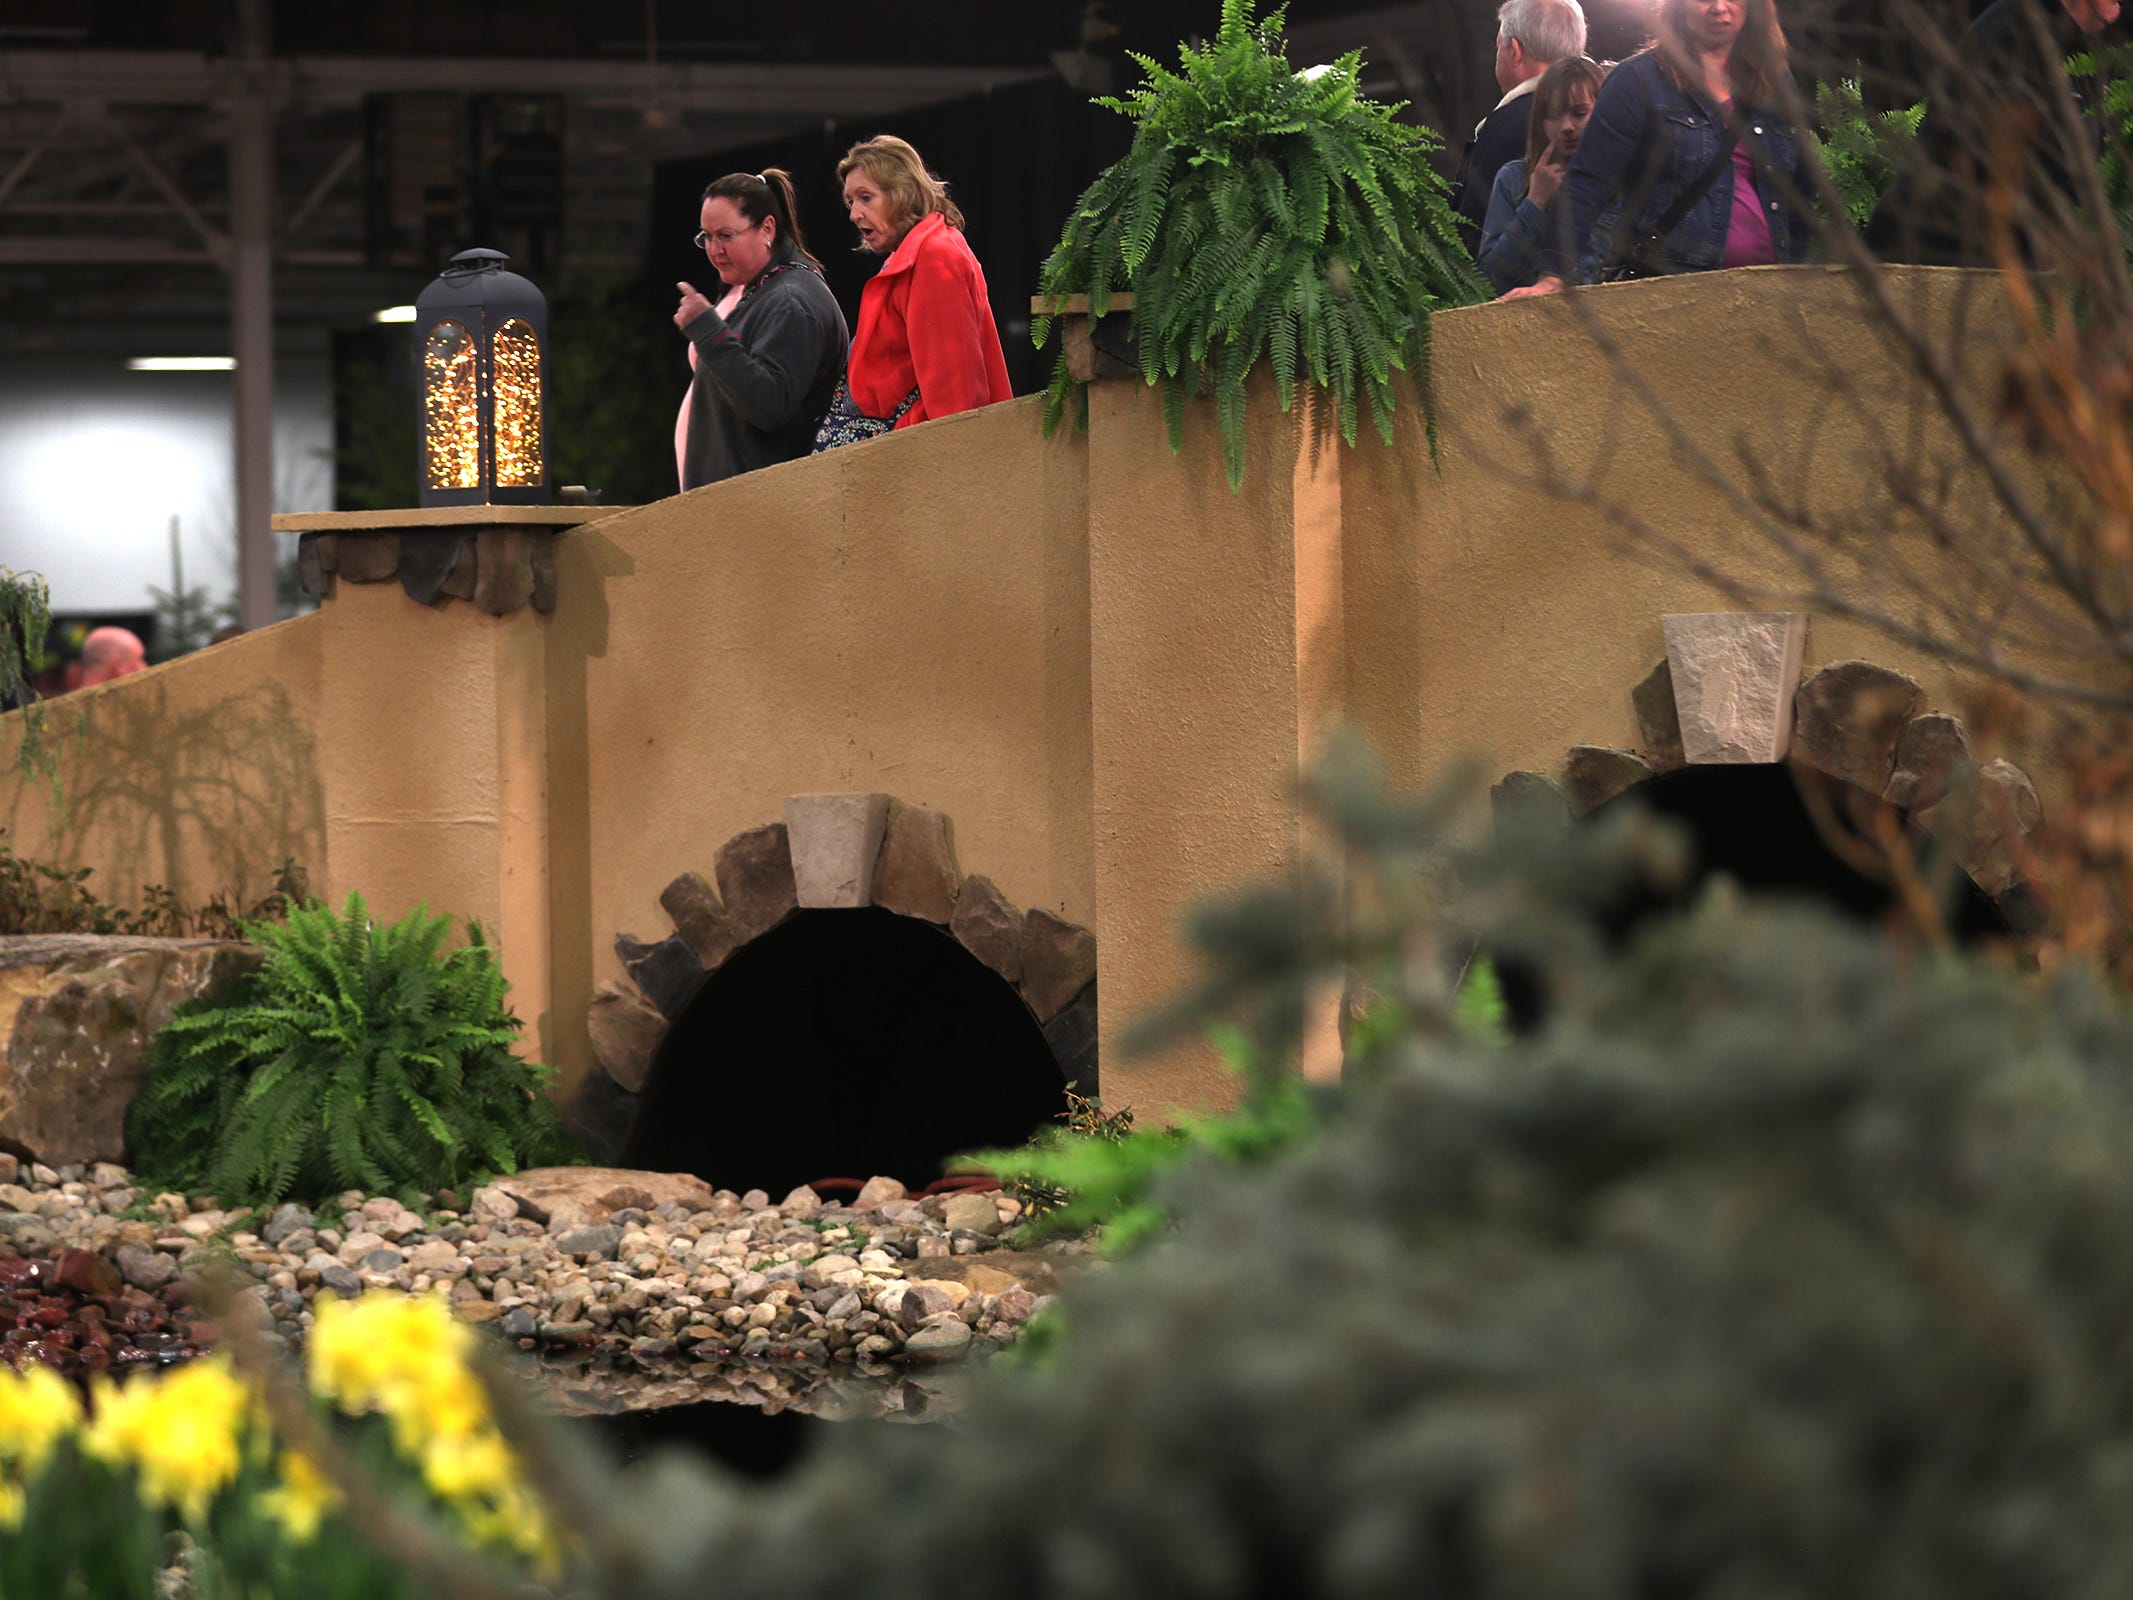 People visit the Pro Care Horticultural Services display which includes a bridge, at the Indiana Flower + Patio Show, at the Indiana State Fairgrounds, Sunday, March 10, 2019.